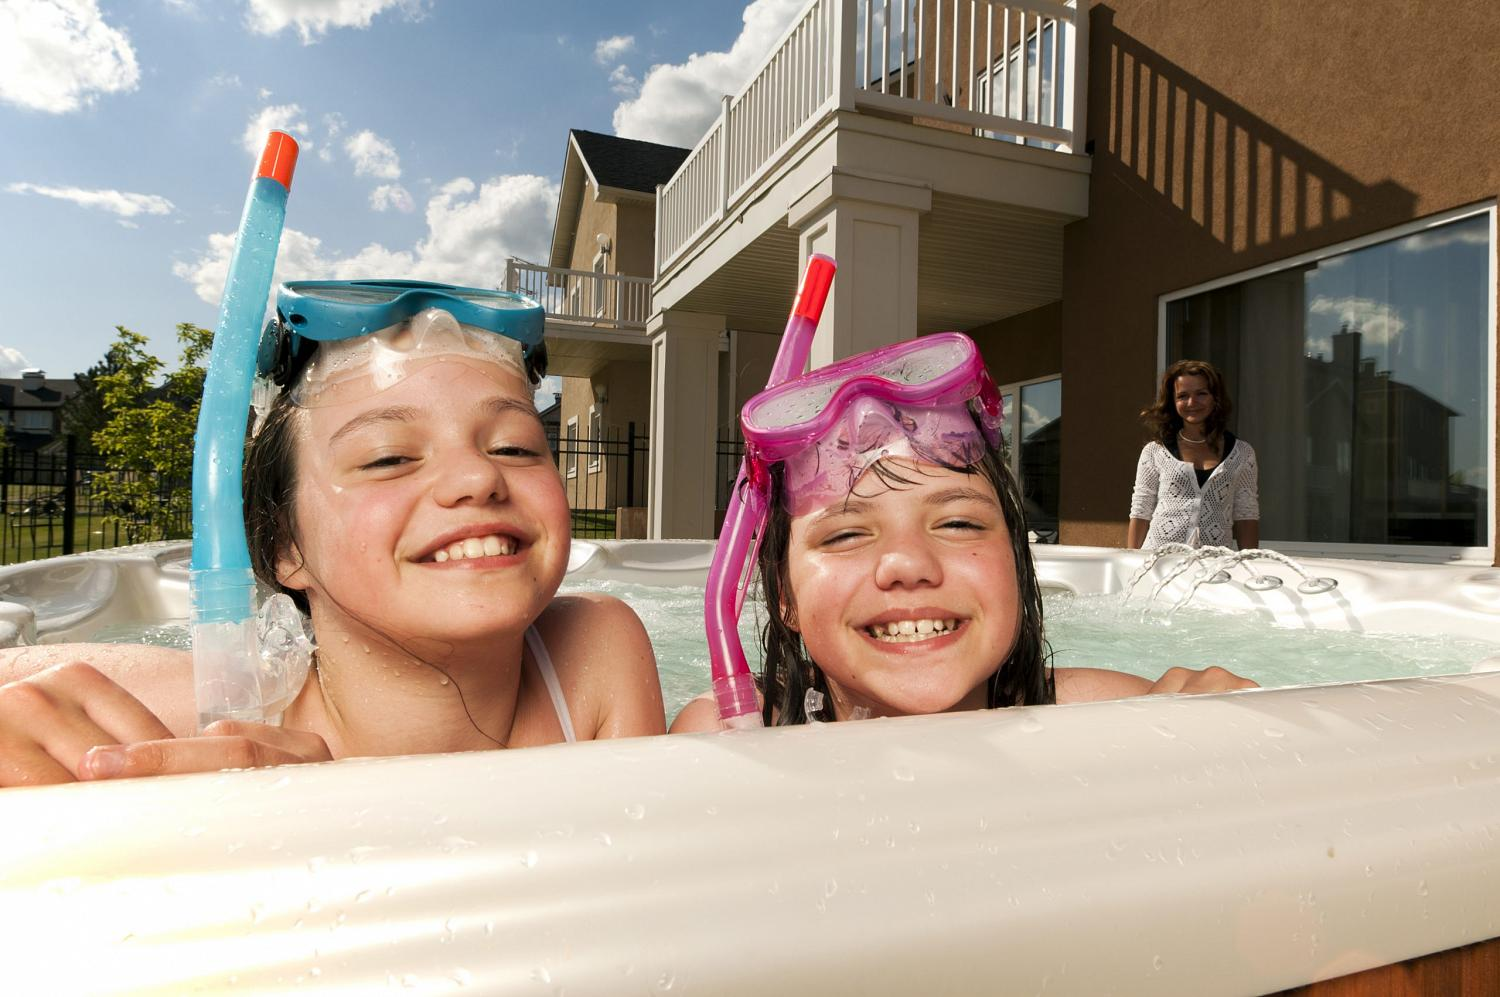 Two little girls have fun in a swim spa